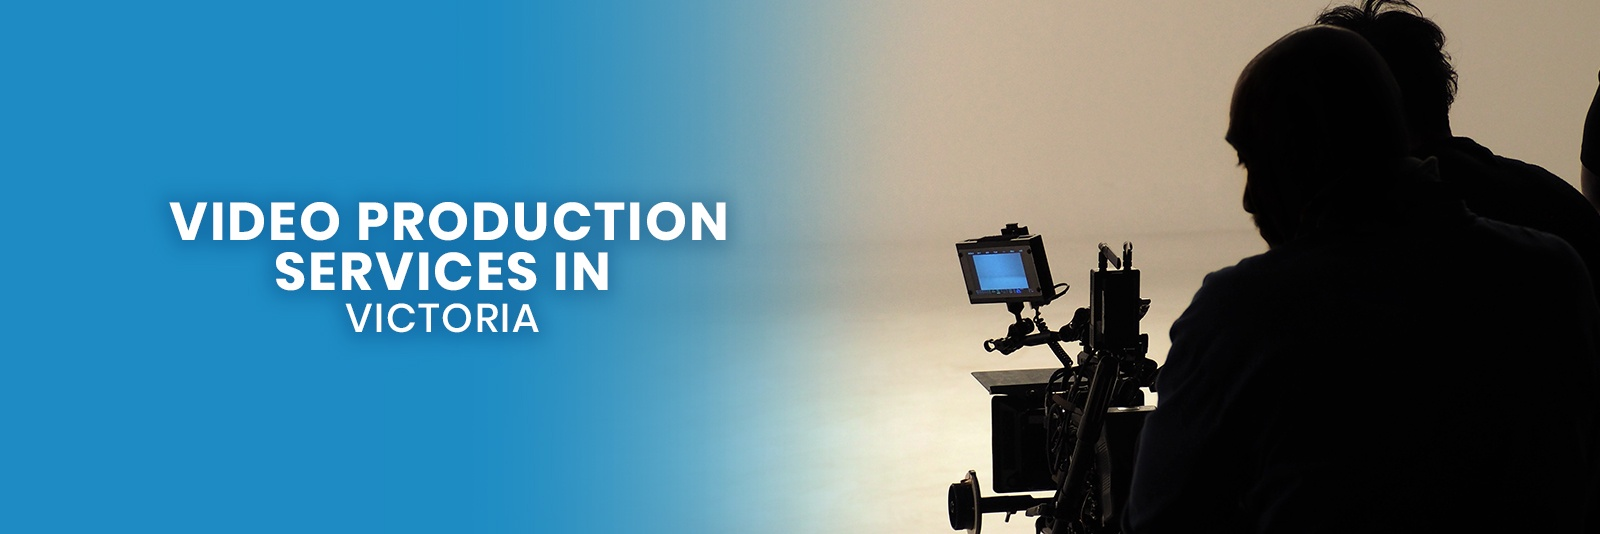 Video Production Services In Victoria